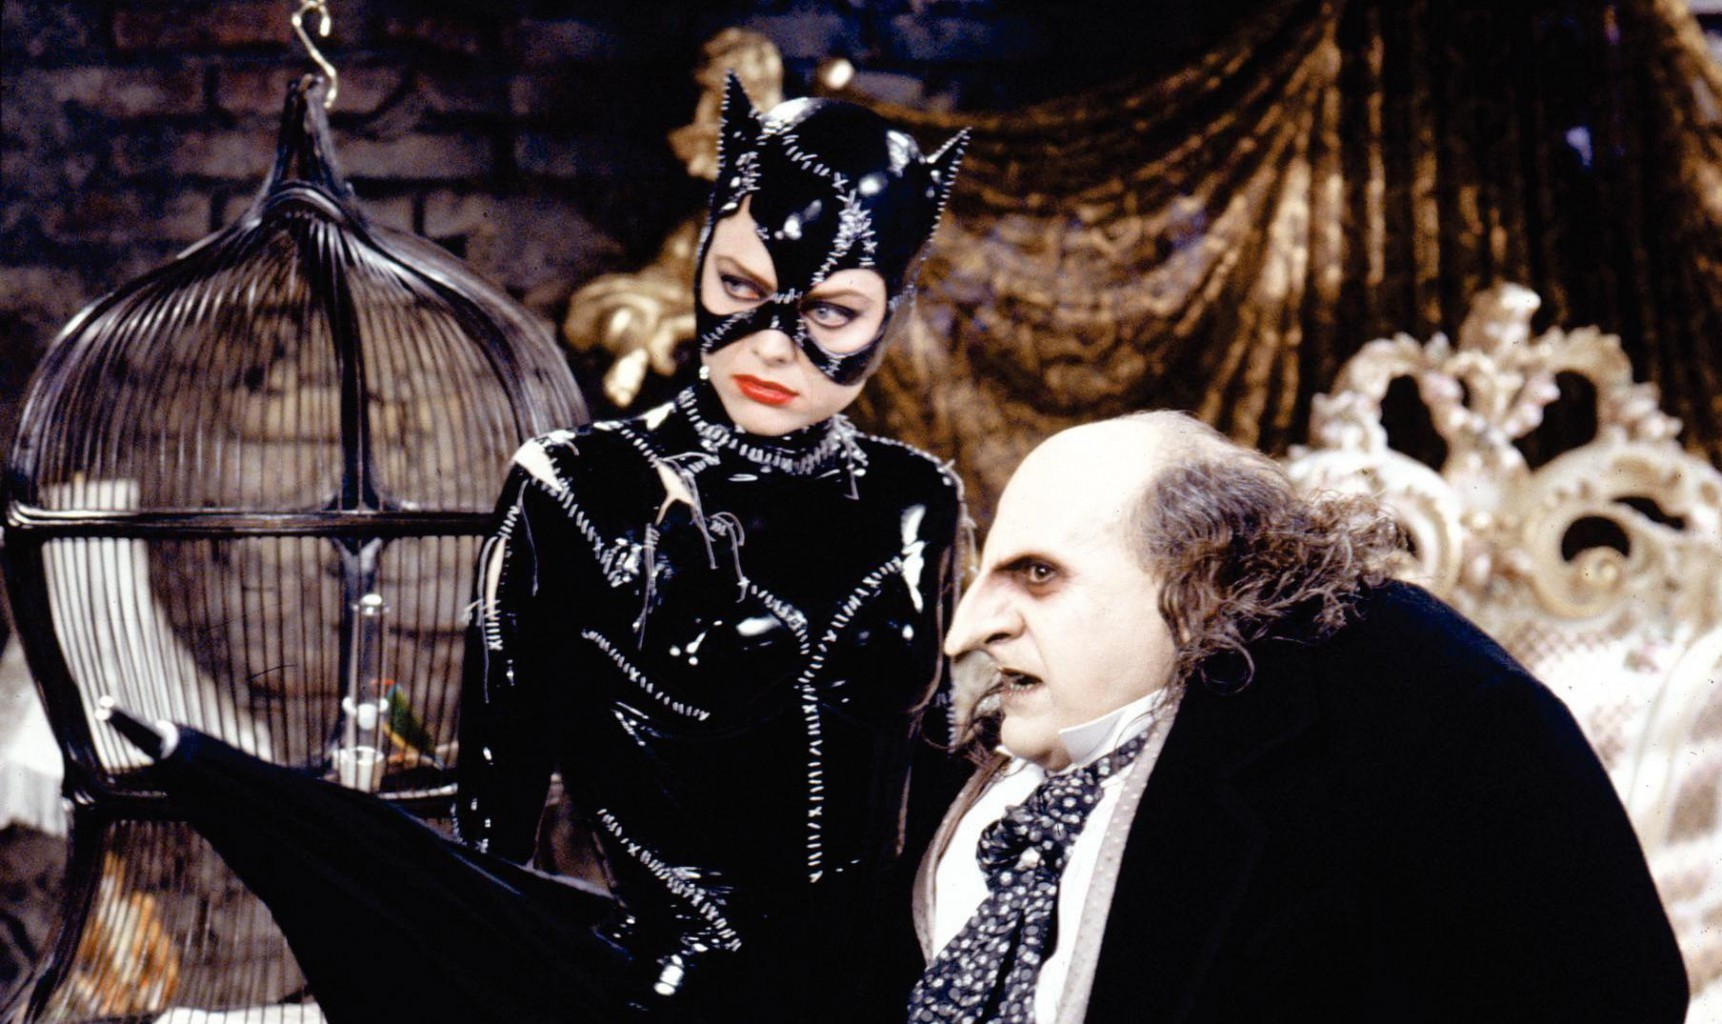 still-of-michelle-pfeiffer-and-danny-devito-in-batman-returns-(1992)-large-picture